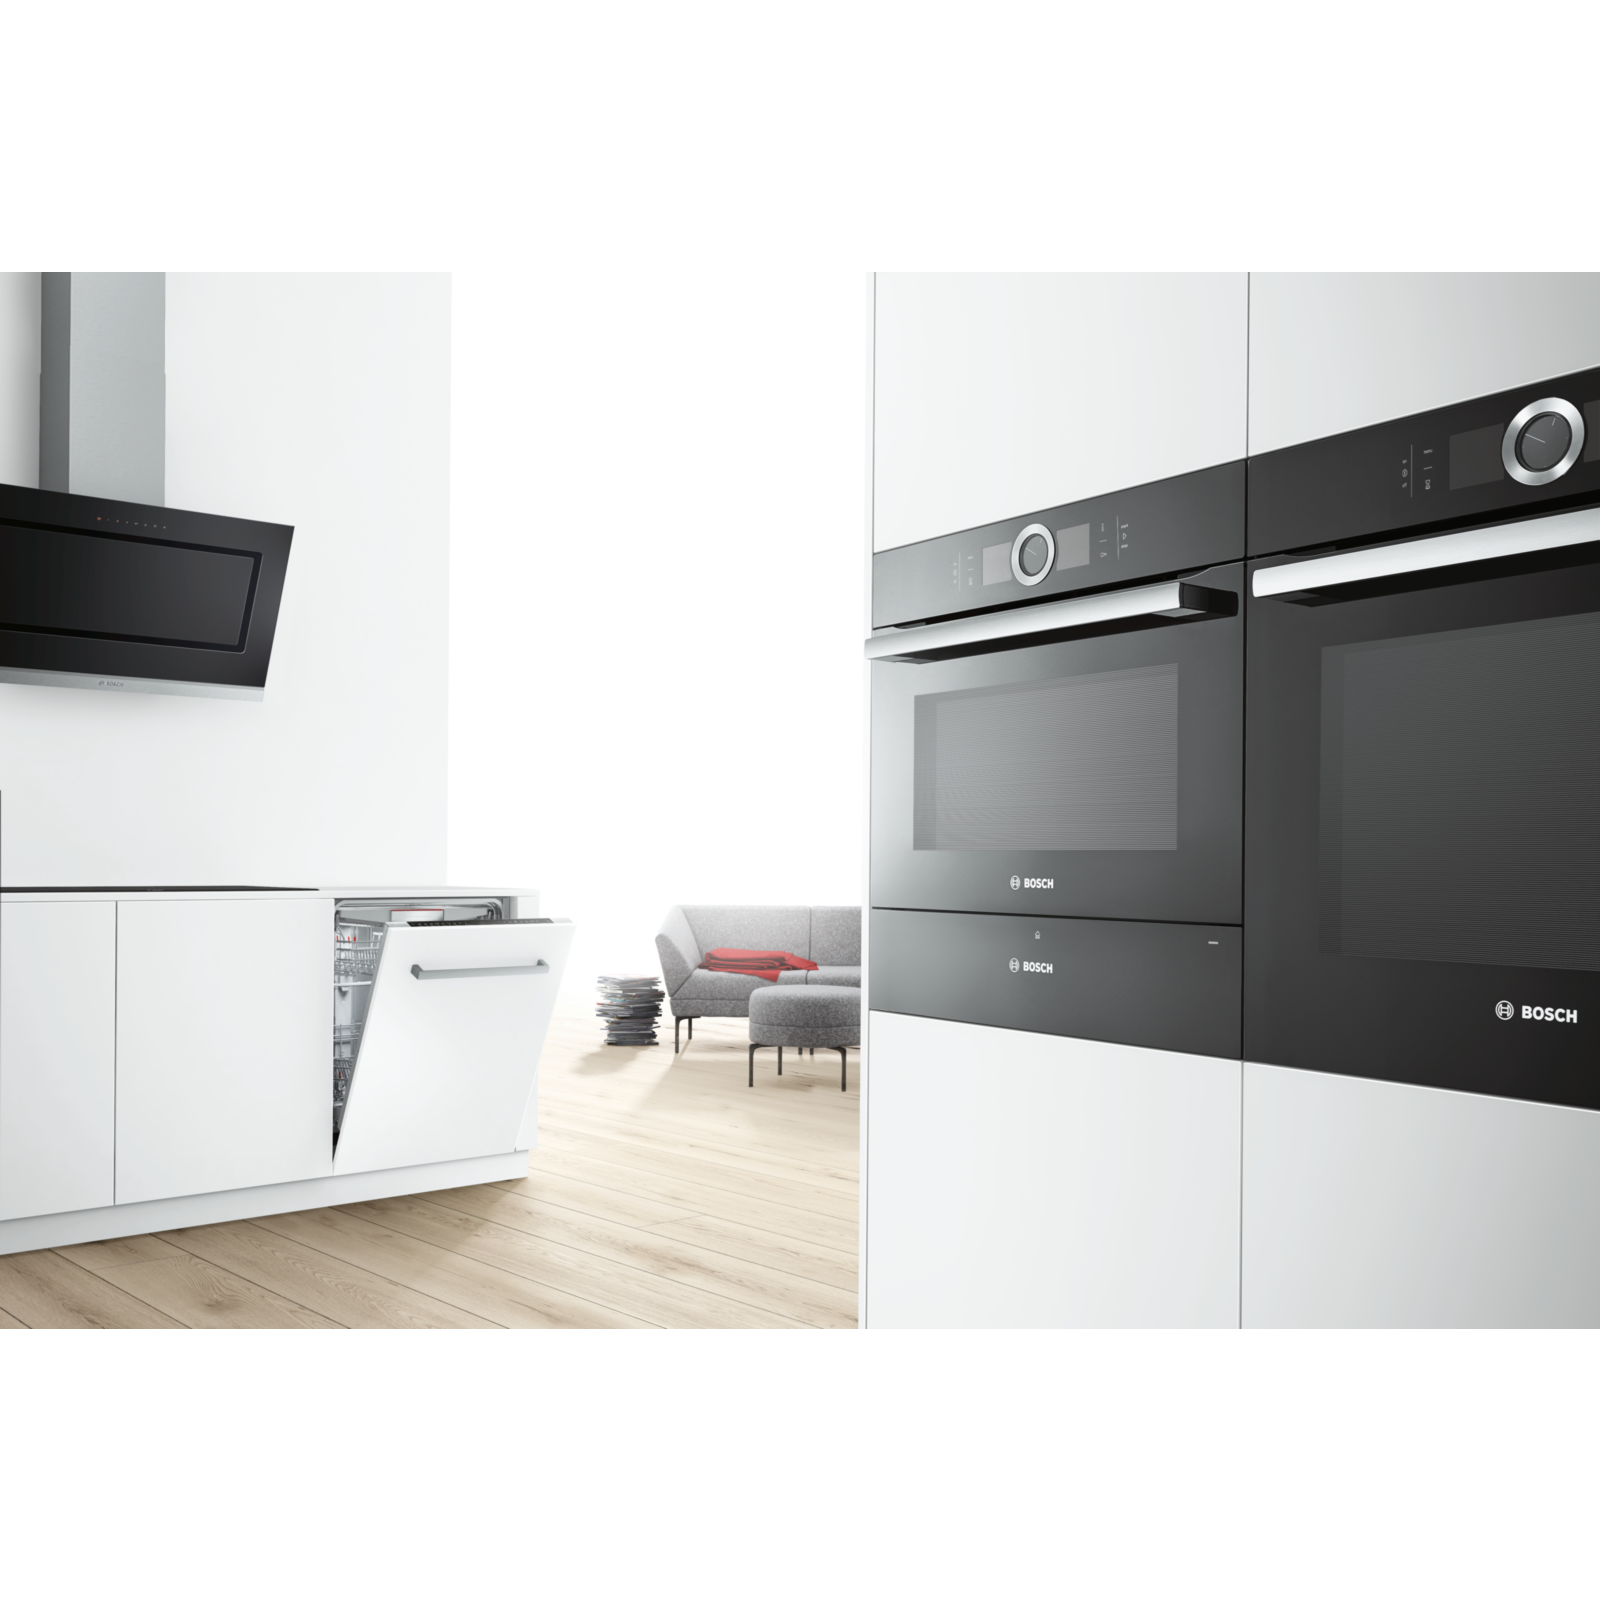 Black is the new stainless steel. Match your oven with your steam ovens, coffee machines and heating drawers. Availible in black, white or stainless steel. | Bosch Serie 8 ovens | #boschtestpilot | #kök | #køkken |  #kjøkken |  #keittiö